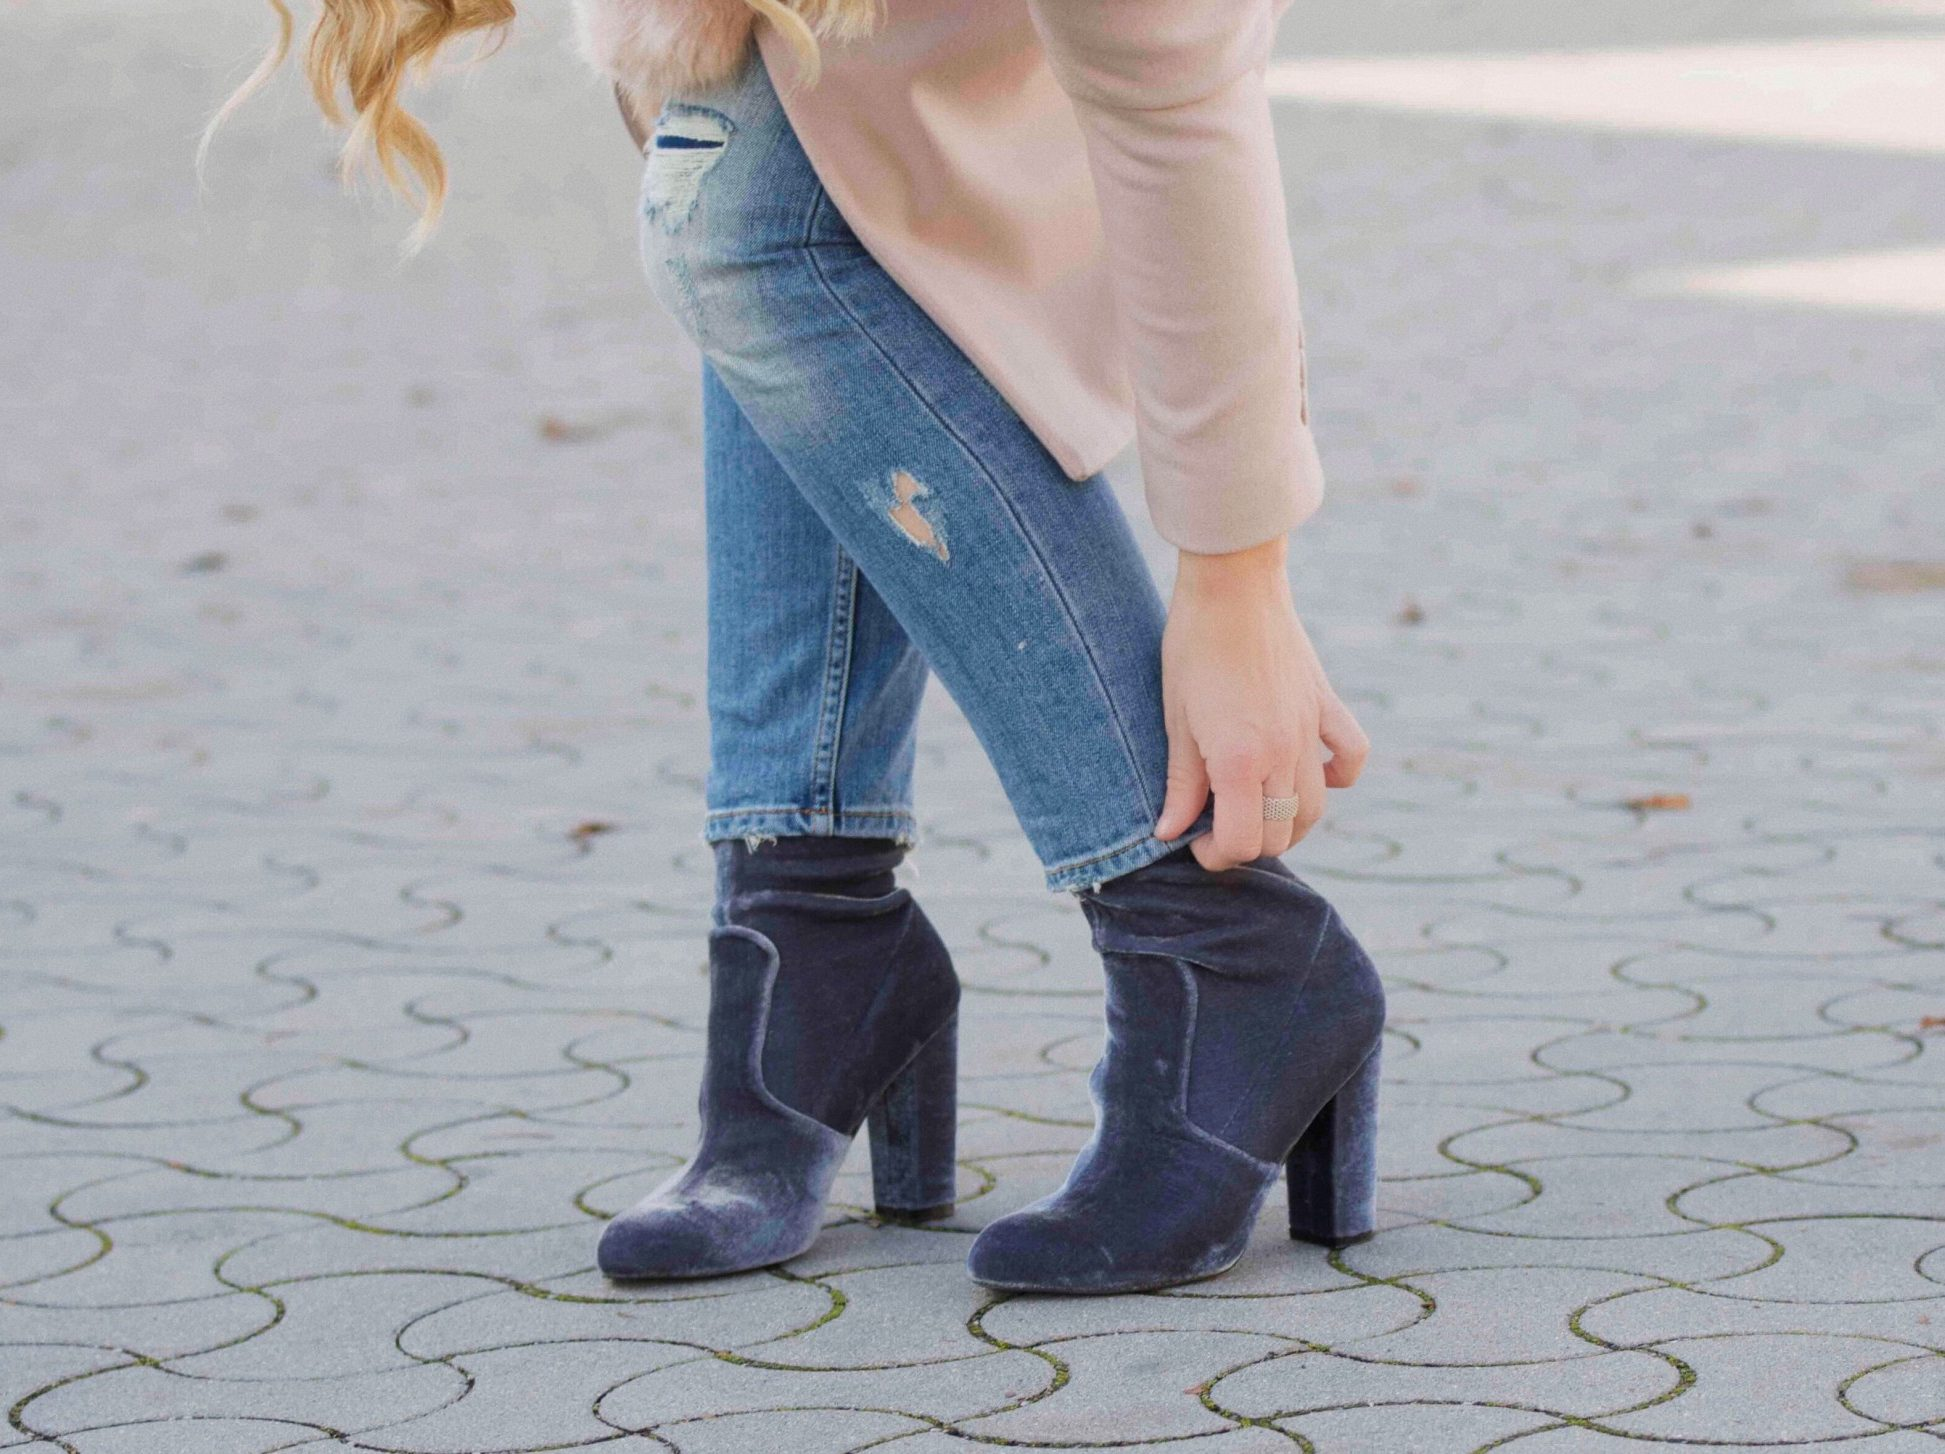 Samtboots in grau, Destroyed-Jeans, Somerset Ring Tiffany, Wollmantel, Pineapples and Pumps, Faschionblog